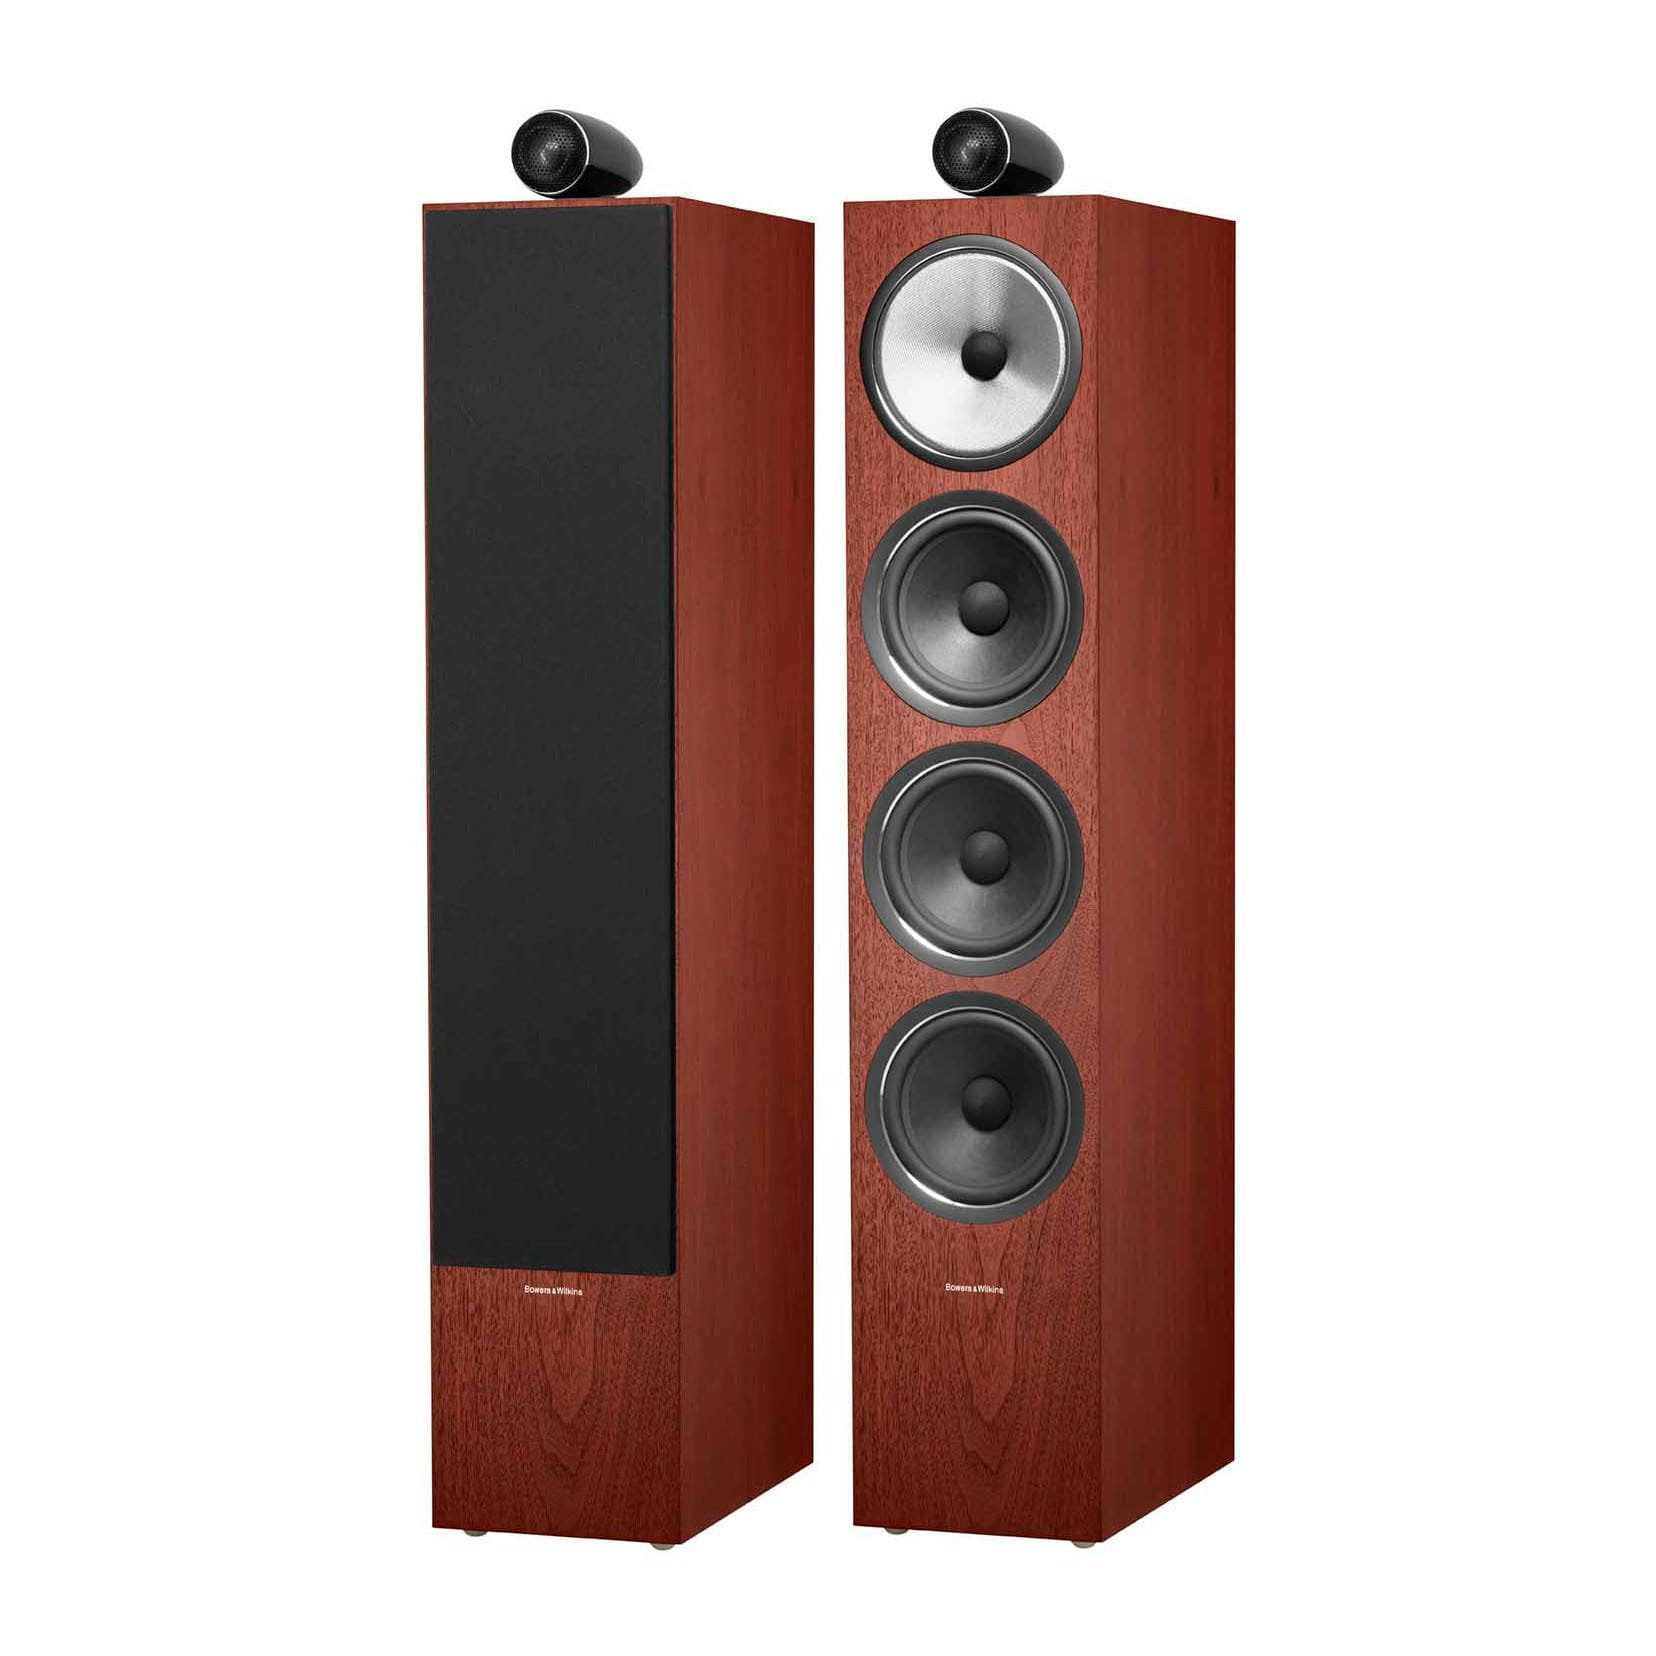 Bowers & Wilkins 702 S2 Floor Standing Speakers